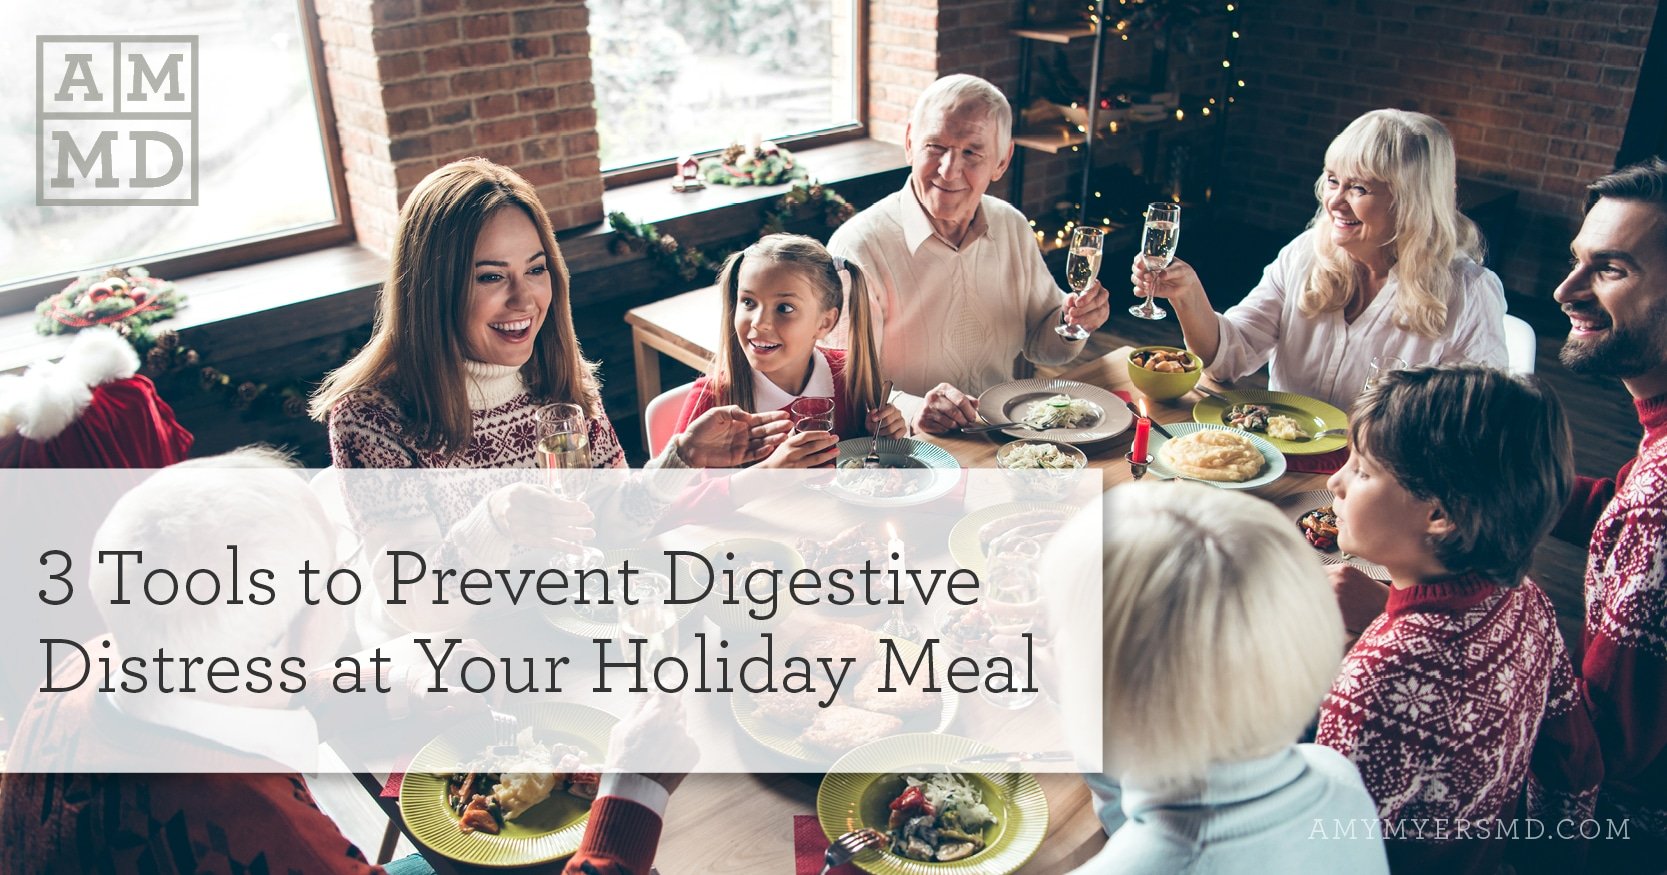 3 tools to prevent digestive distress